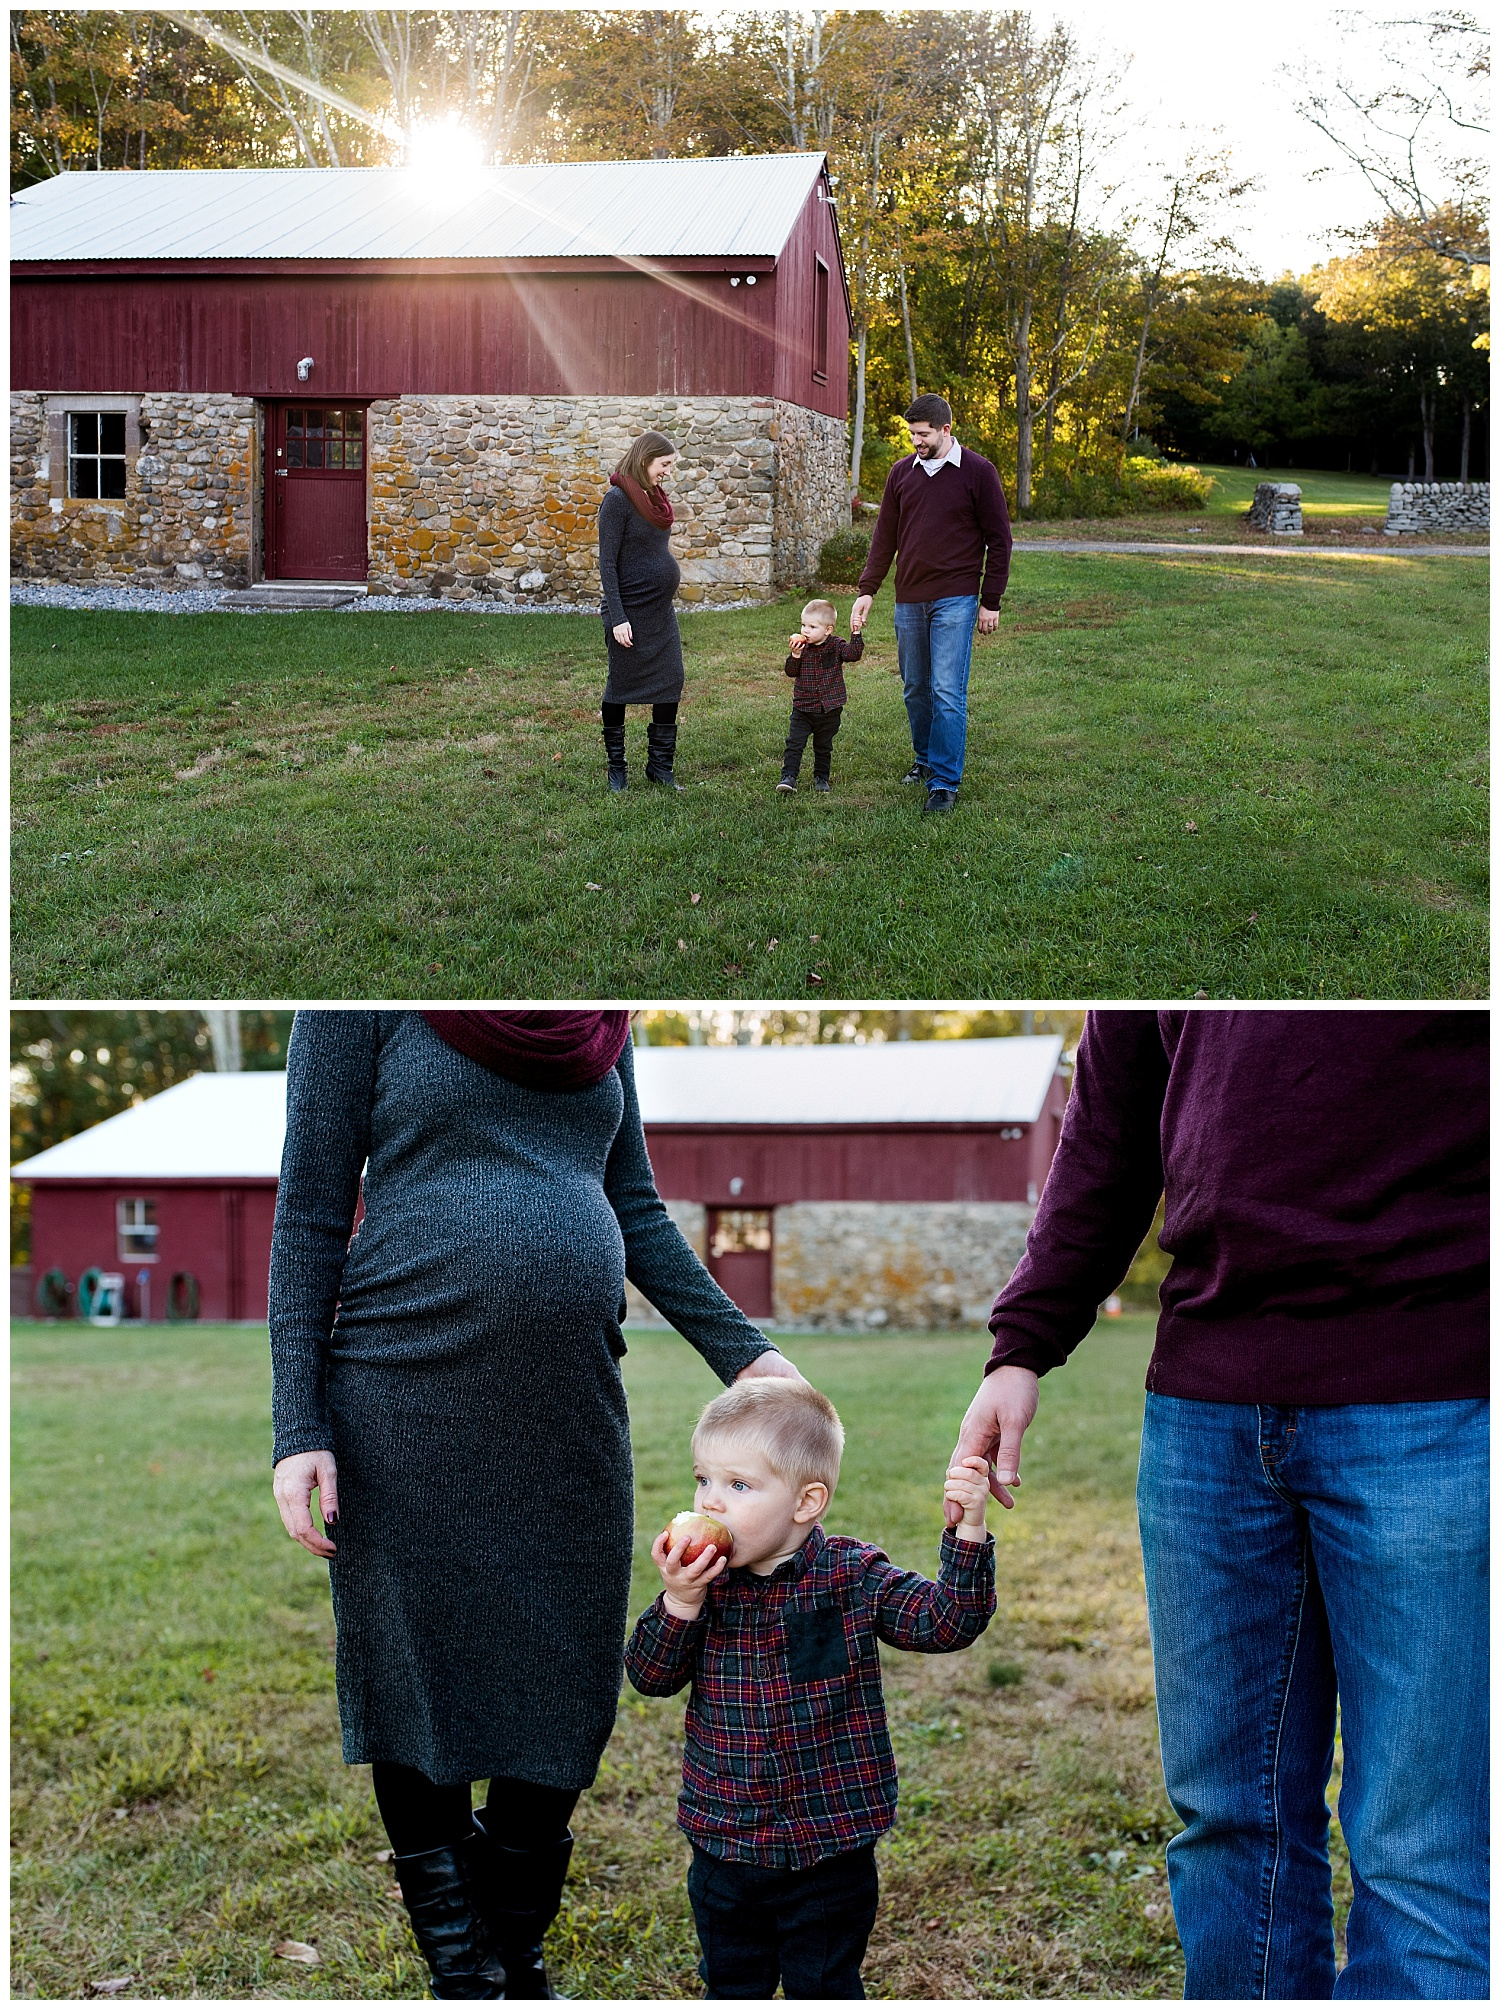 fairfield county, ct maternity photographer. maternity and newborn photographer connecticut